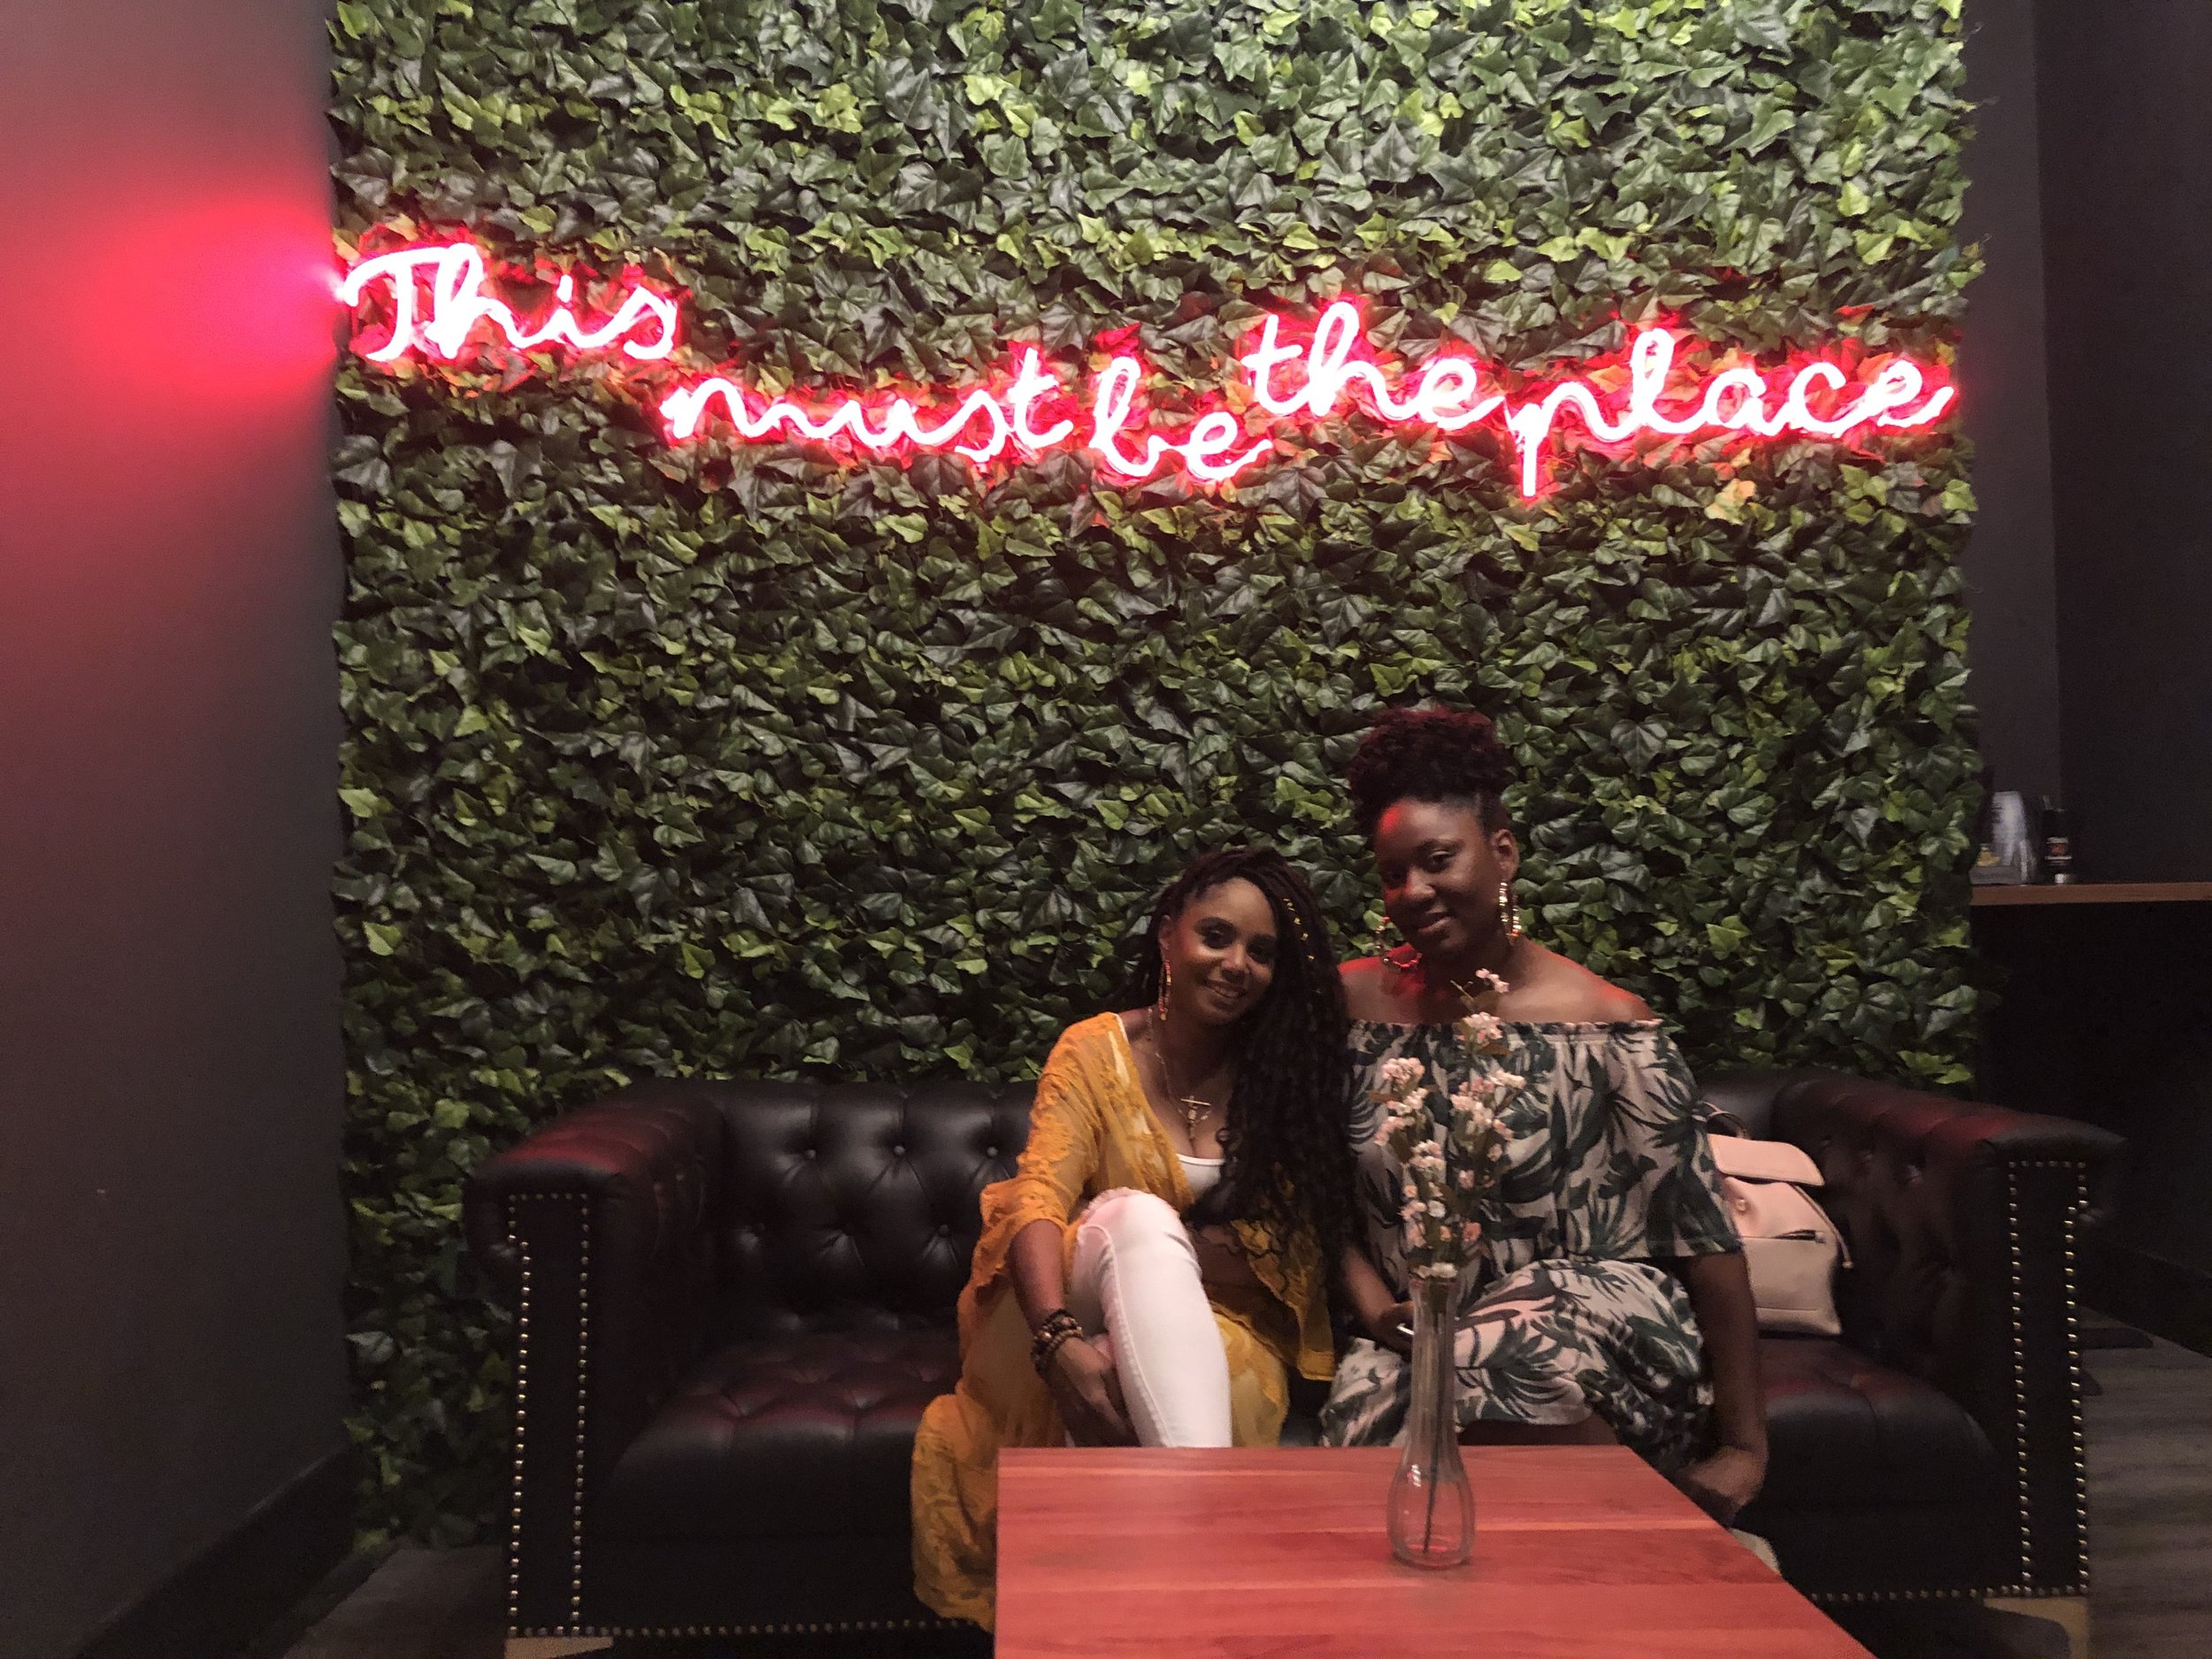 Jennifer J. with her best friend, Chaneka at The Ivy in Cleveland, OH.